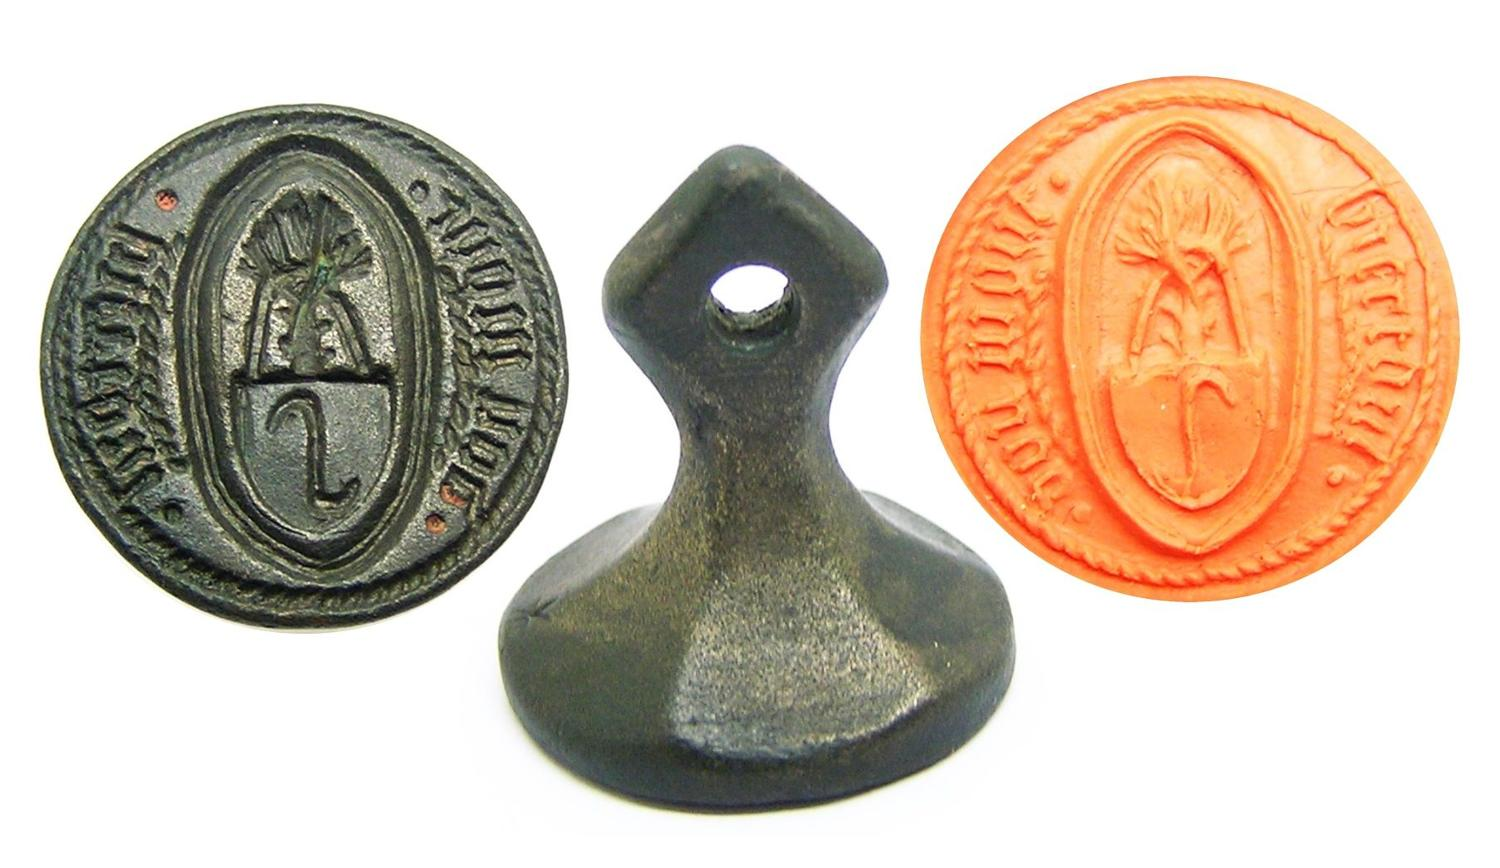 Medieval armorial seal of Biertoul dou mour